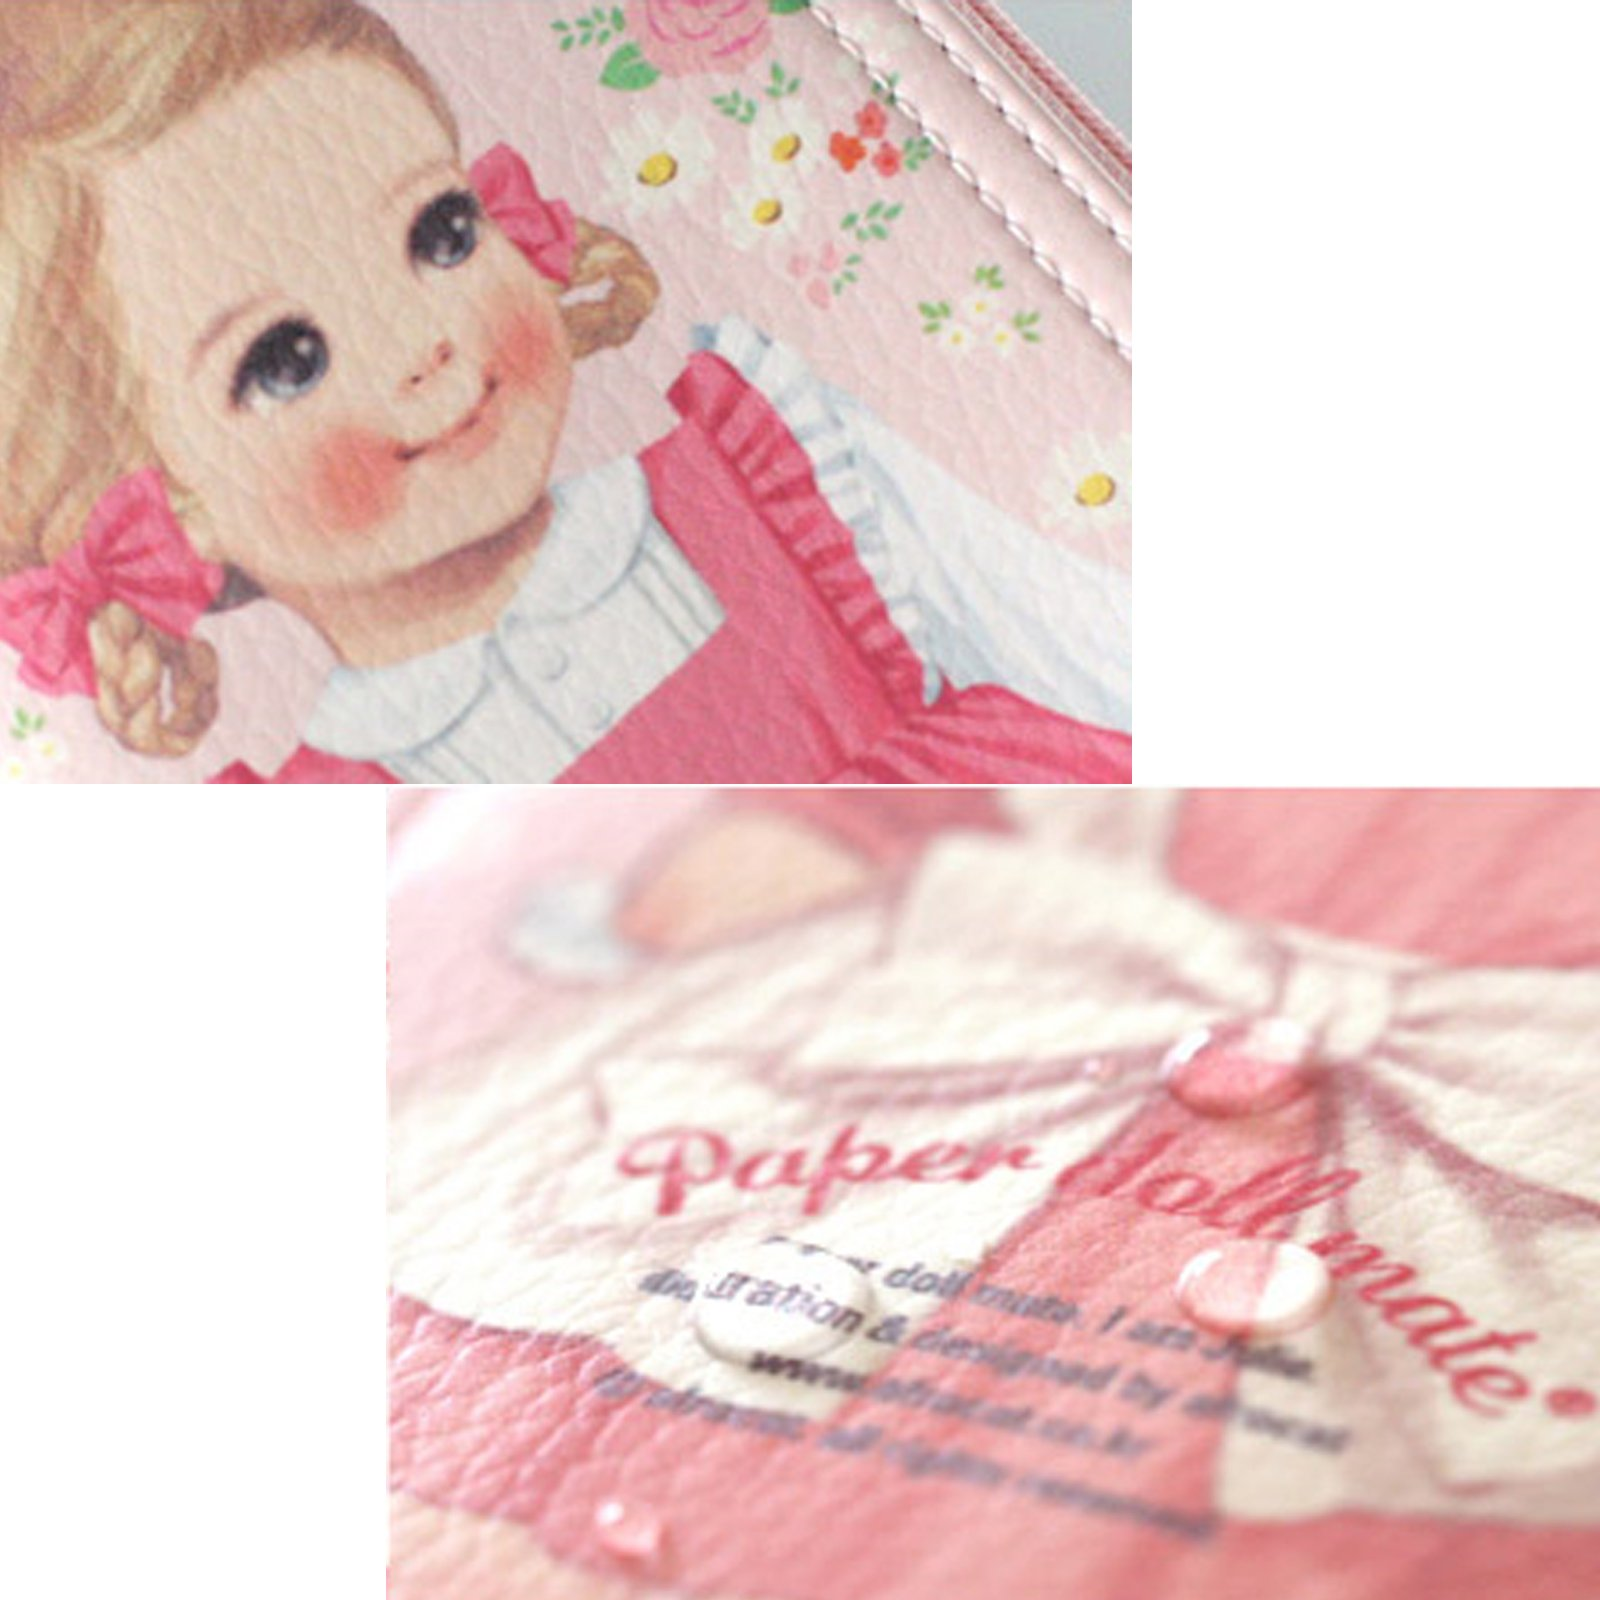 paperdollmate pencase ver011_toy Julie by paper doll mate (Image #7)